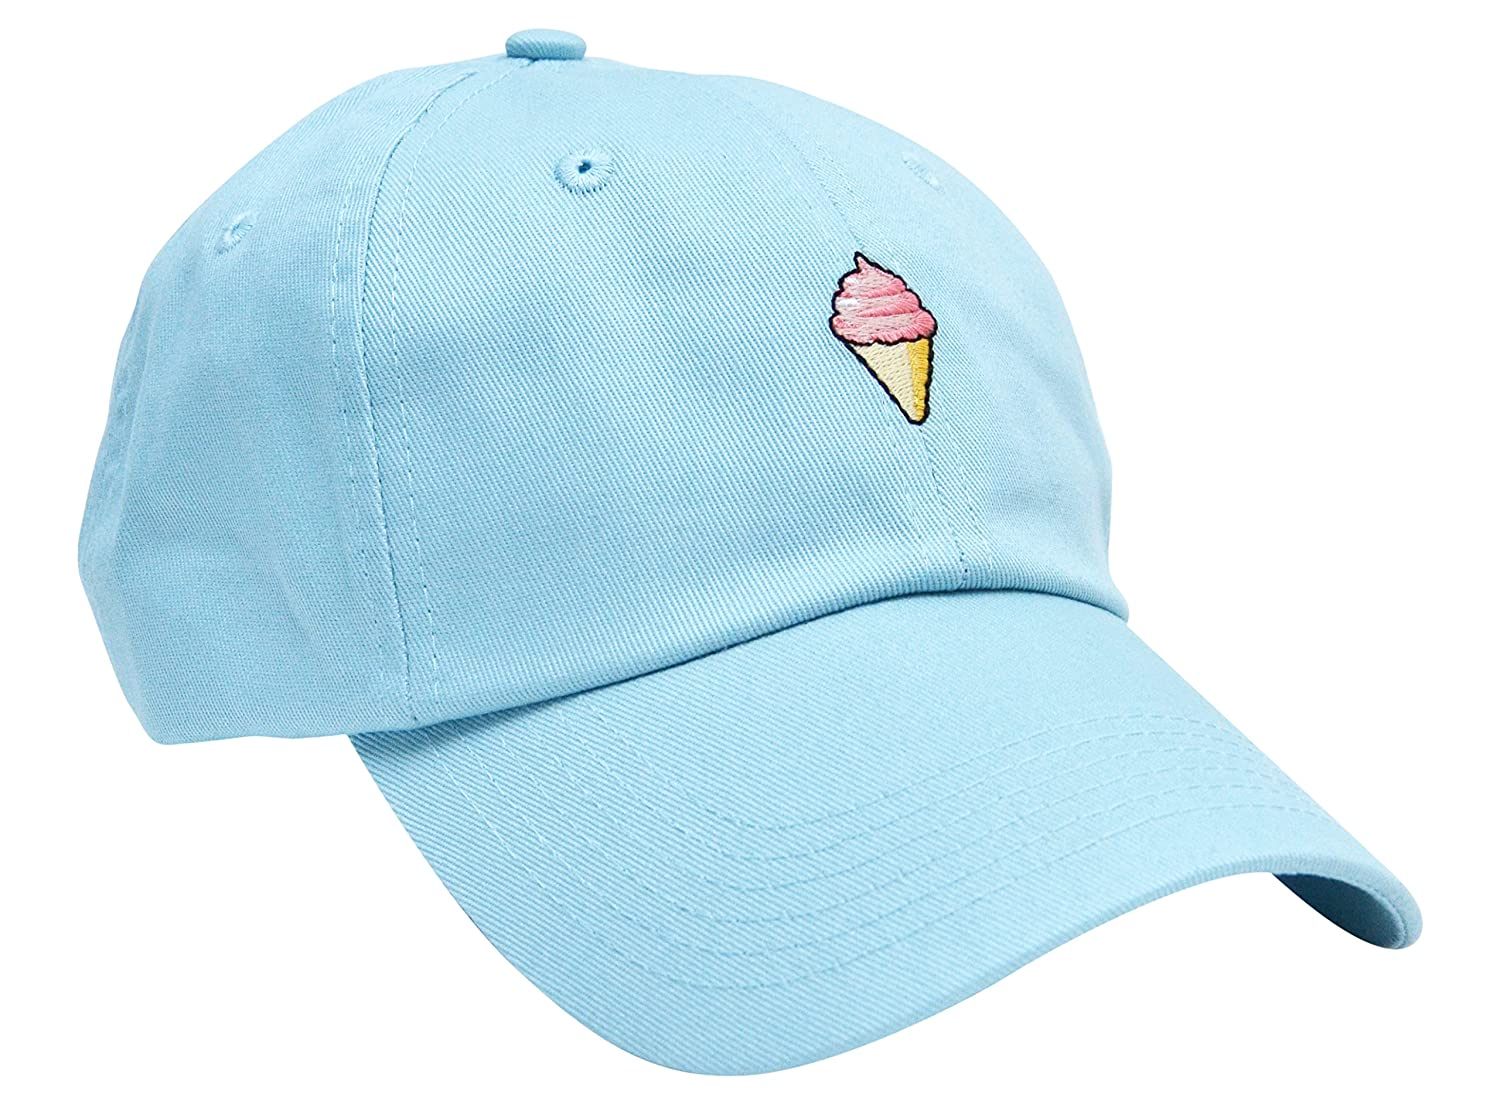 597169cce98 Skyed Apparel ICE CREAM Embroidery Adjustable Baseball Cap Baseball Hat Dad  Hat (Baby Blue) at Amazon Men s Clothing store